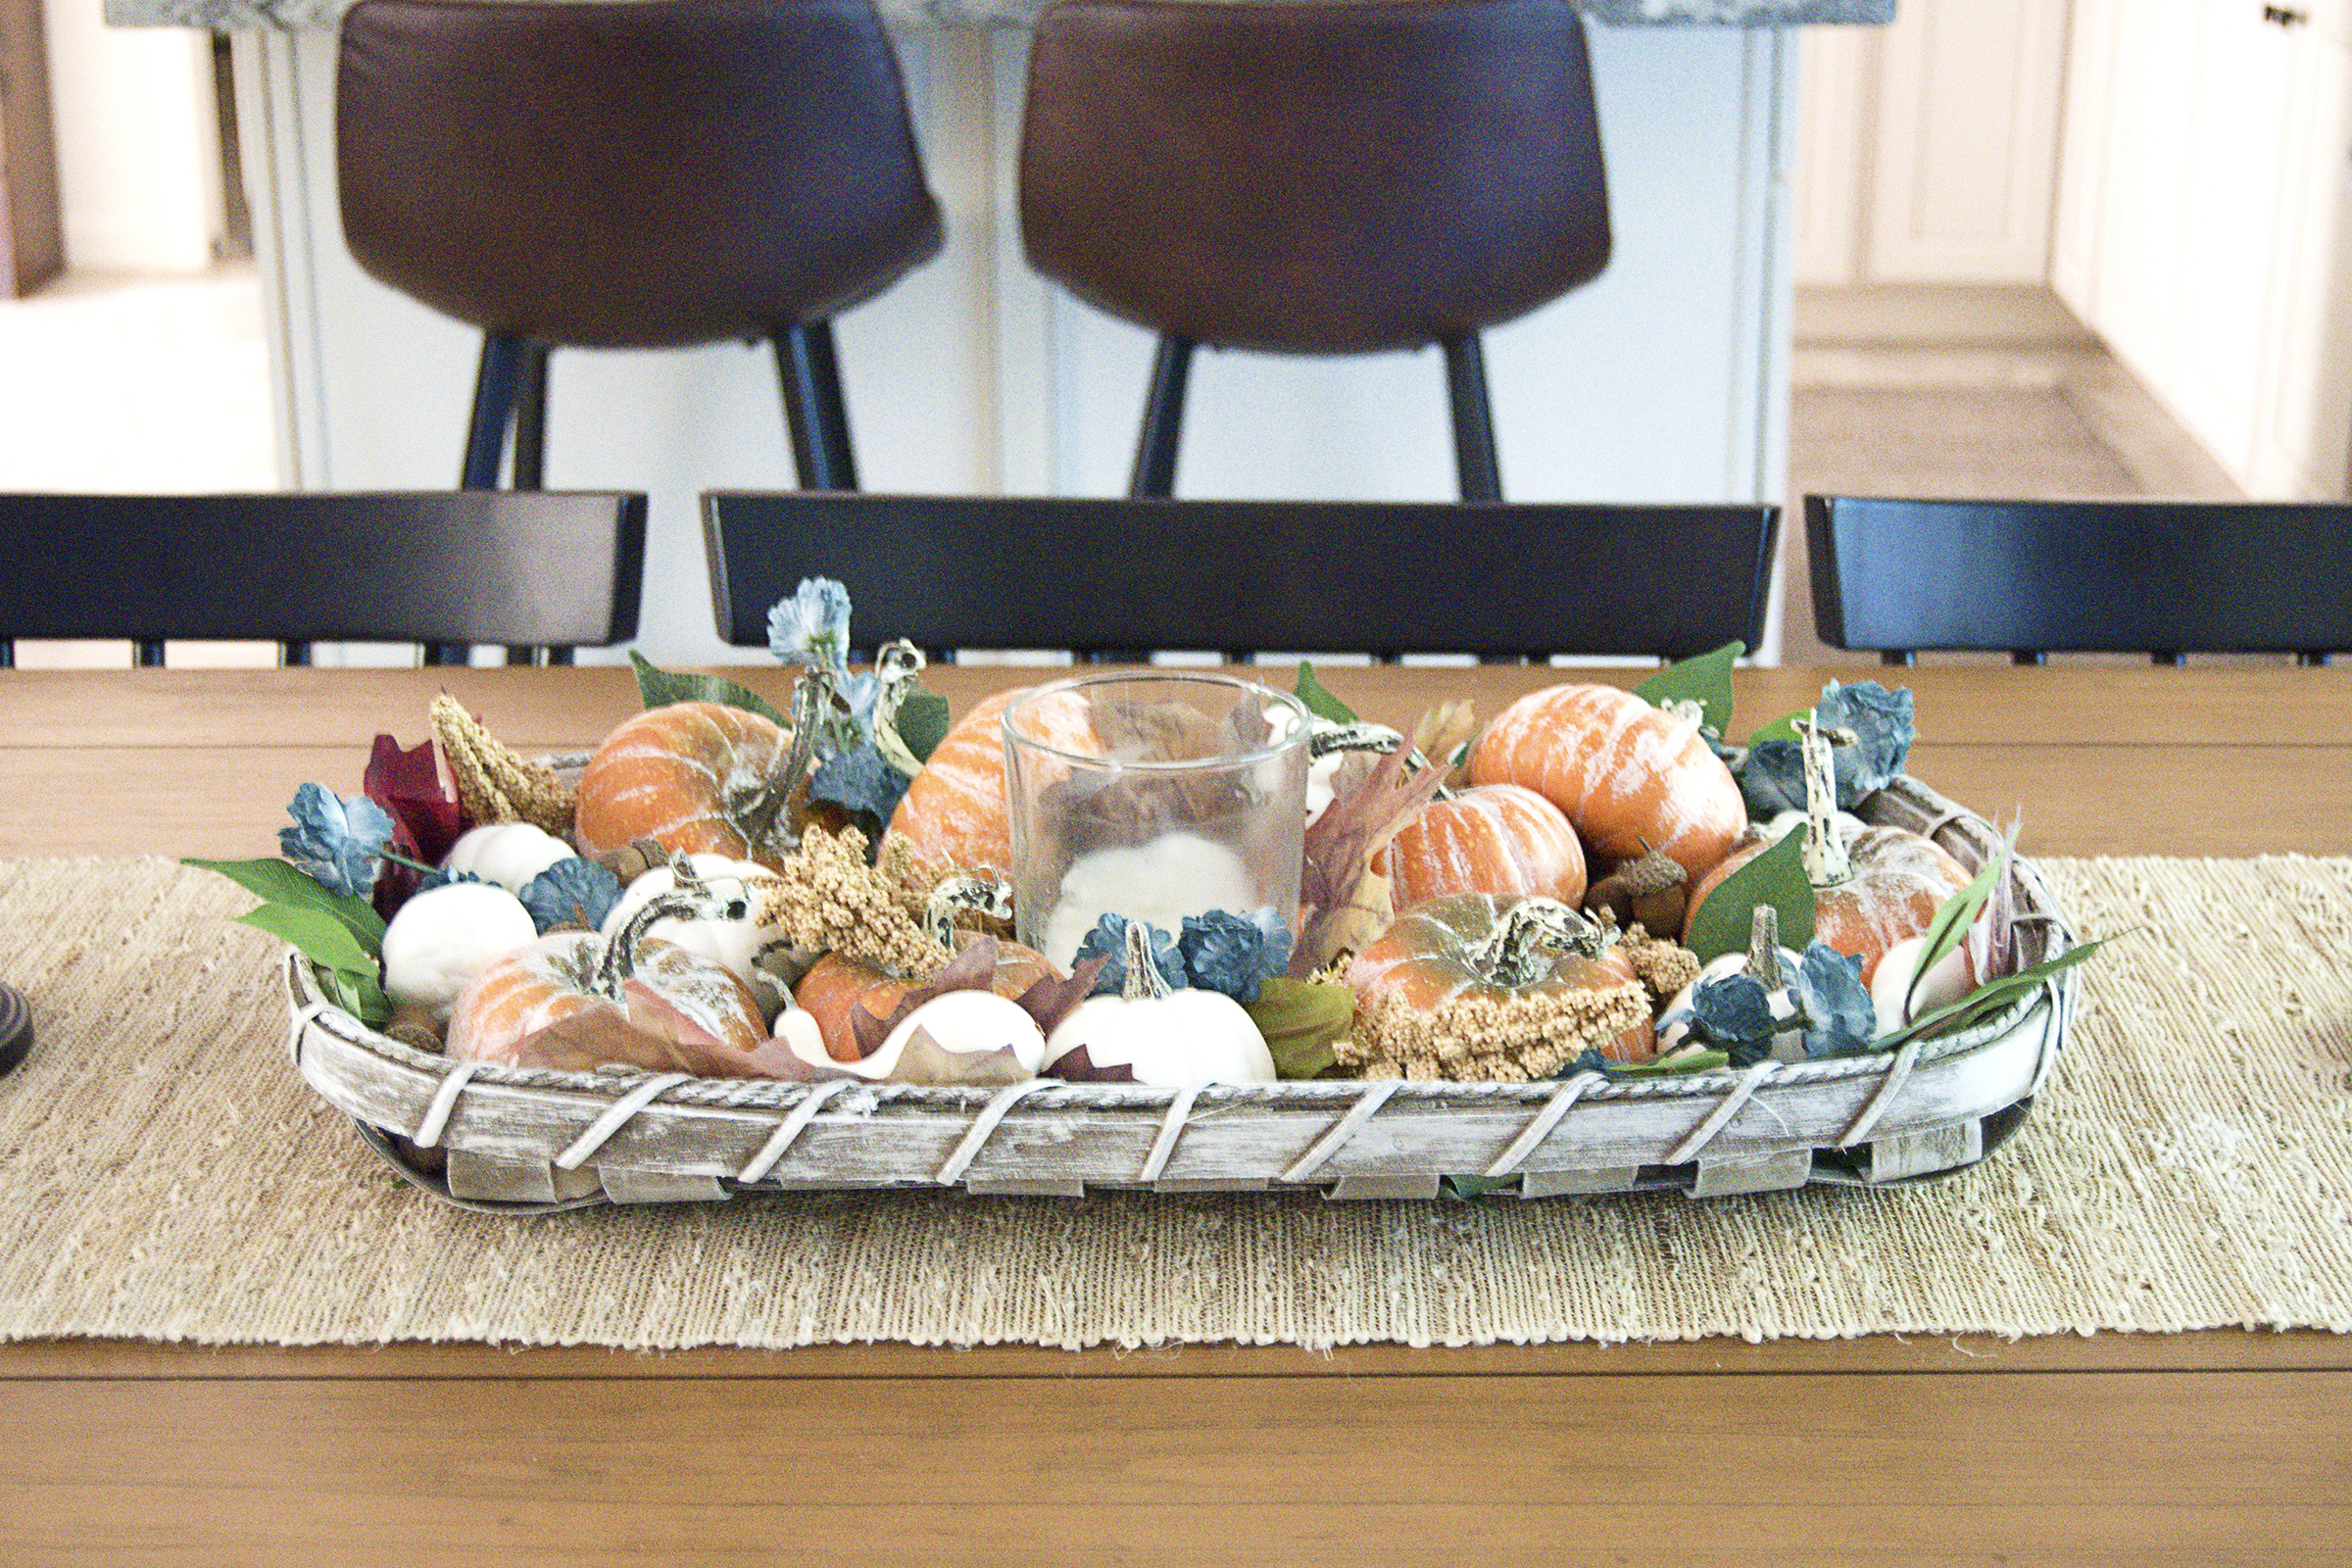 It's fall, y'all! I'm sharing my new fall table decor, pumpkins and all, and also some extra shots of other fall harvest decor around the house!